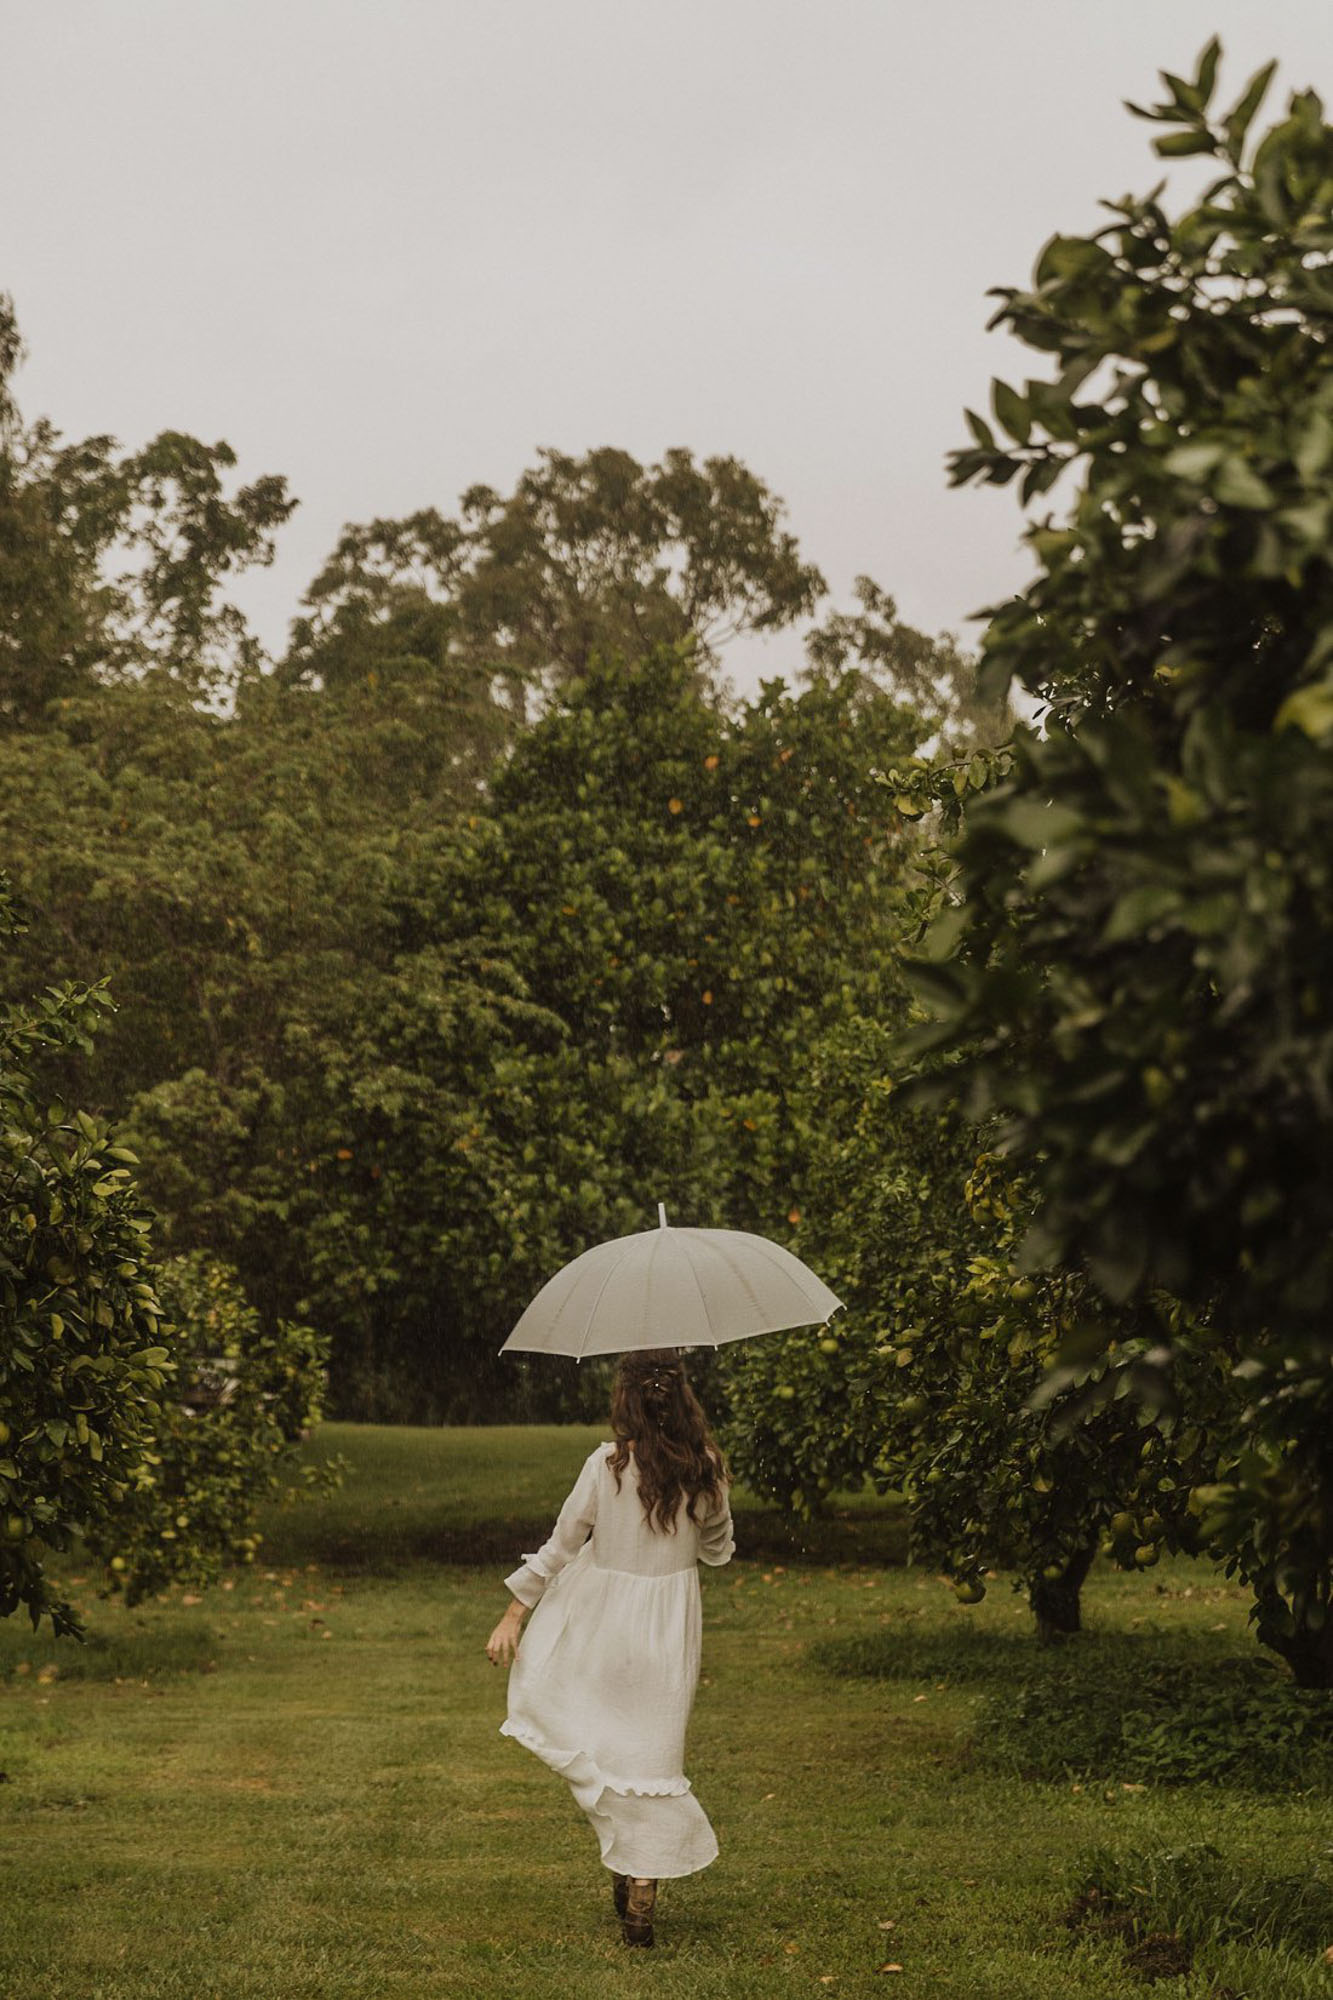 Styled Photshoot - Orchard Picnic Cairns  - Event Styling and Catering by The Collection Co-14.jpg